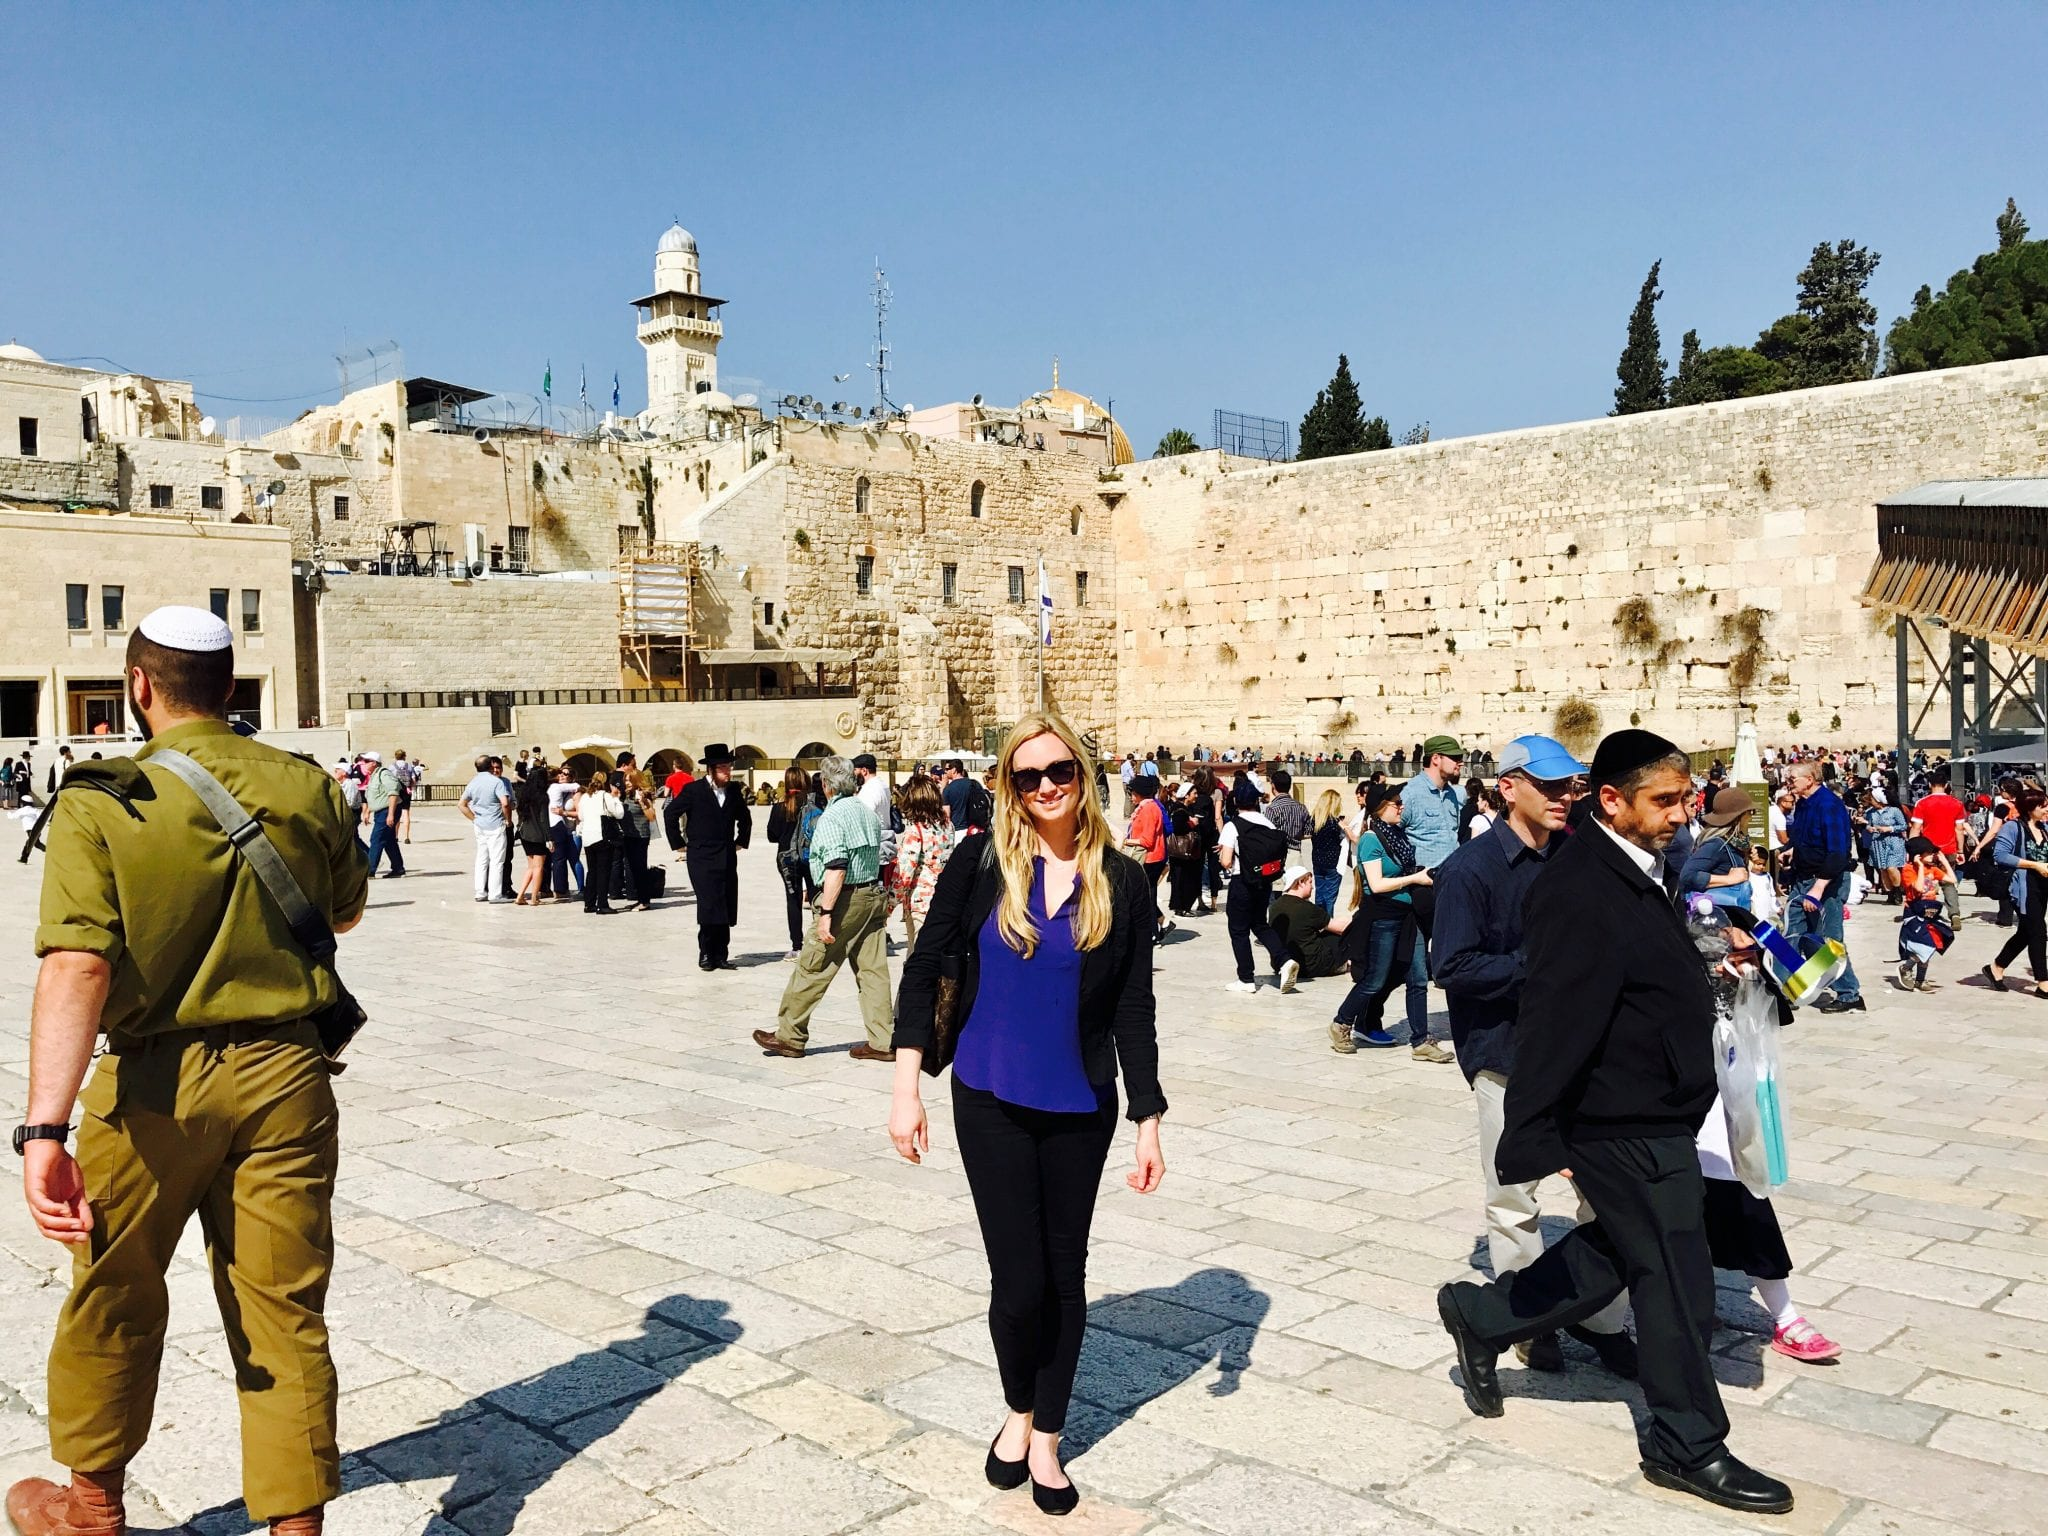 The Wailing Wall or Western Wall in Jerusalem